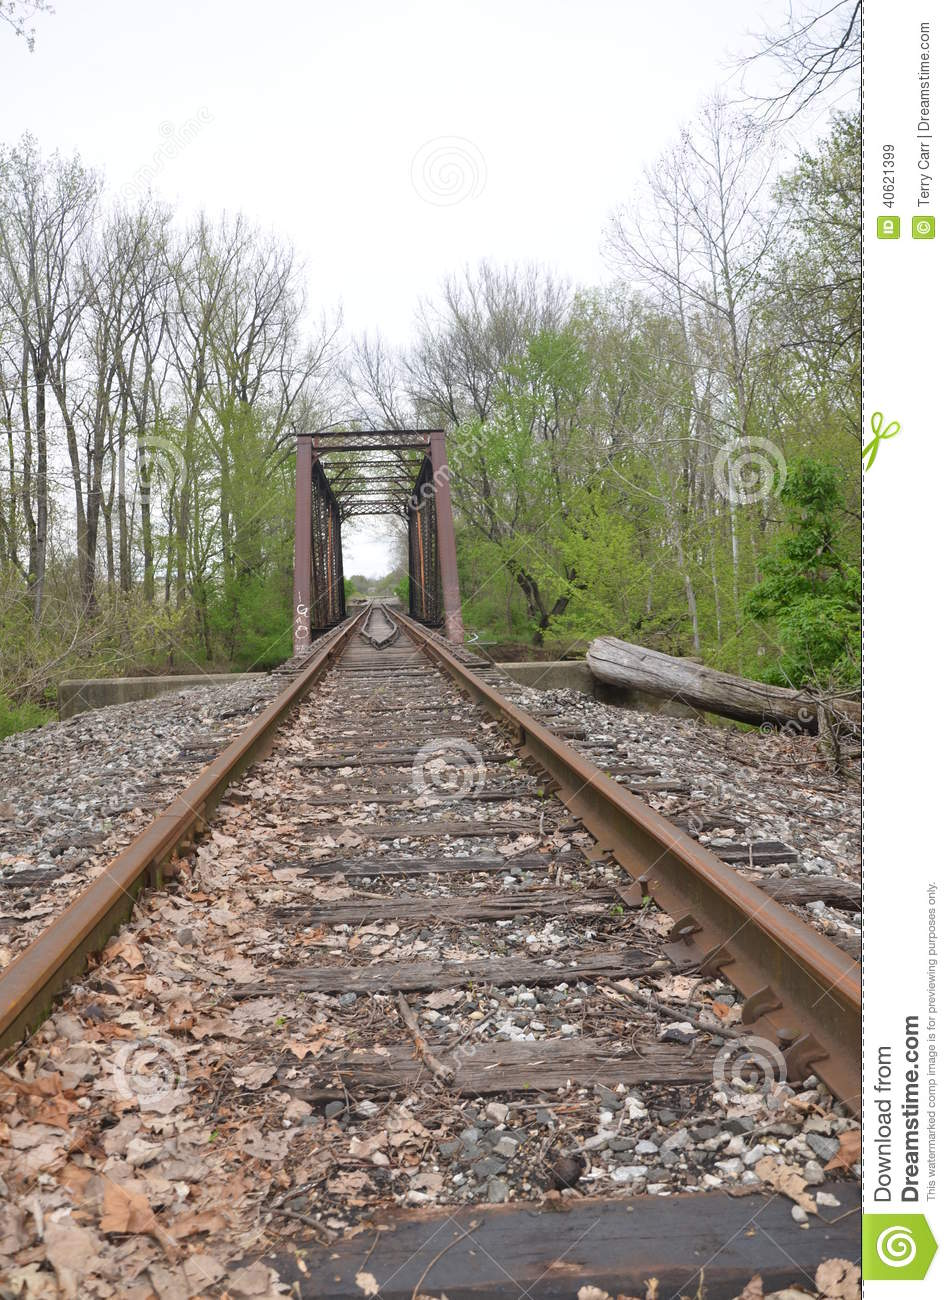 Abandoned Railroad Tracks And Bridge Stock Image.